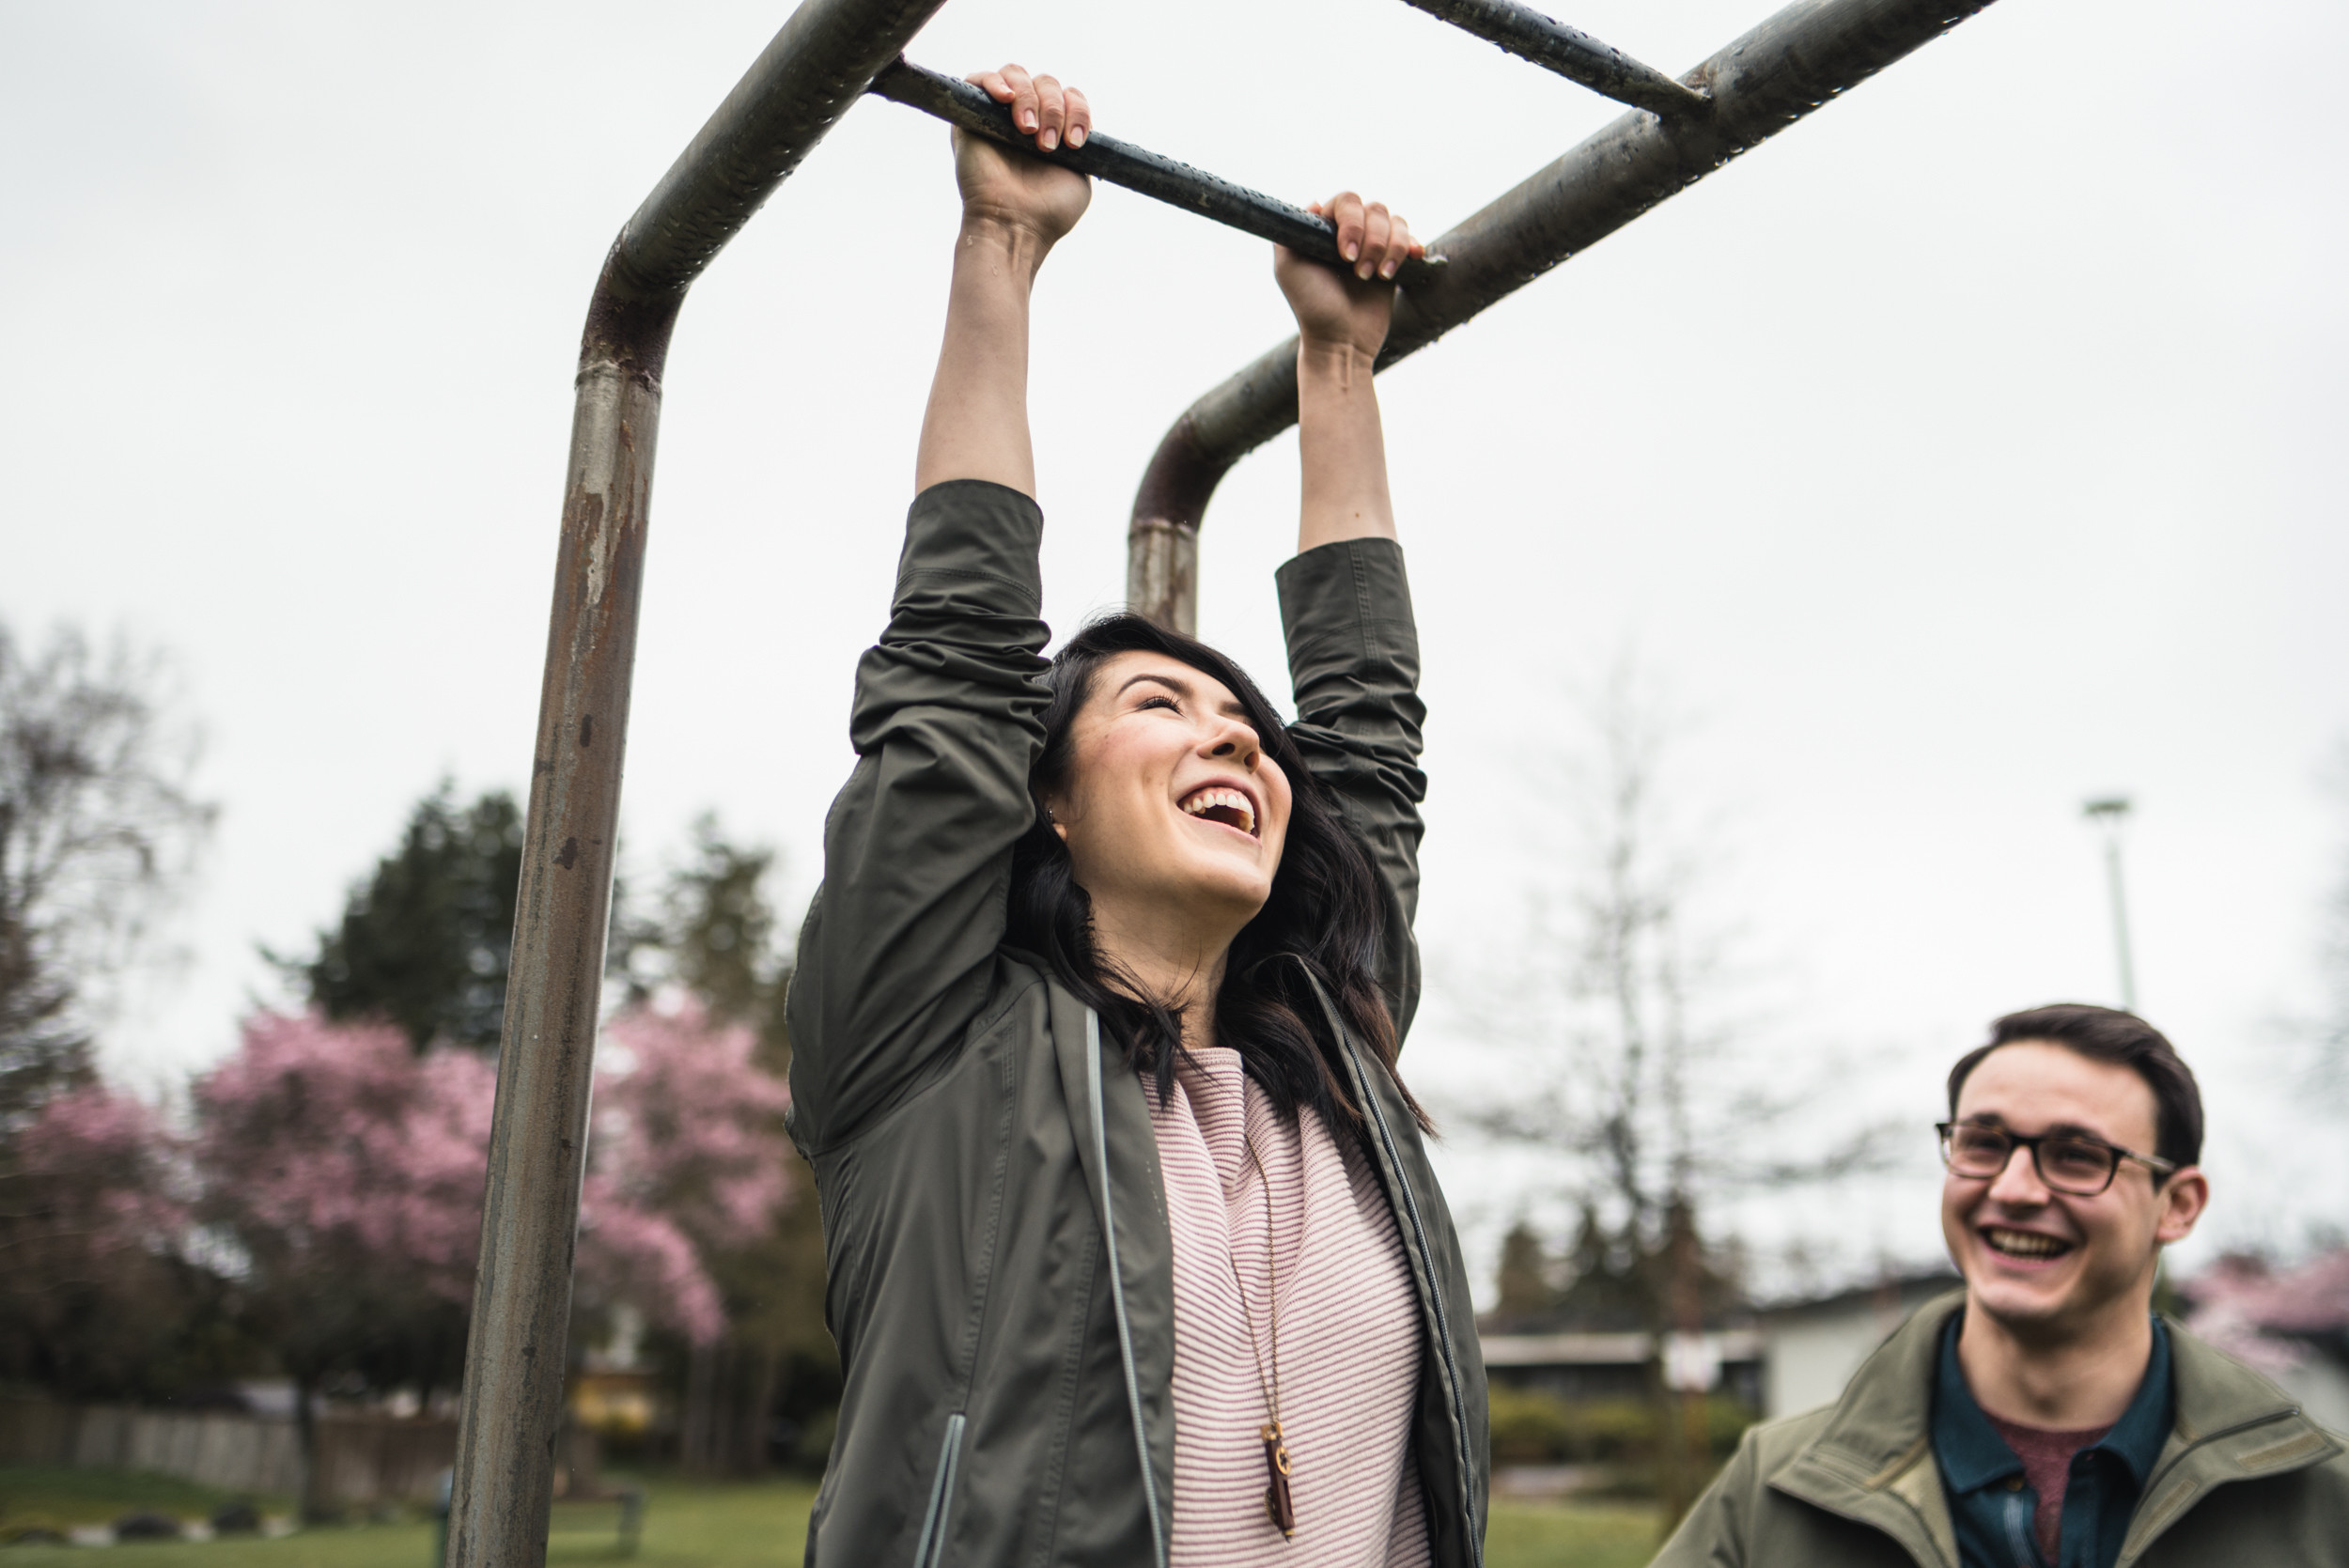 Couple swinging on bars at playground